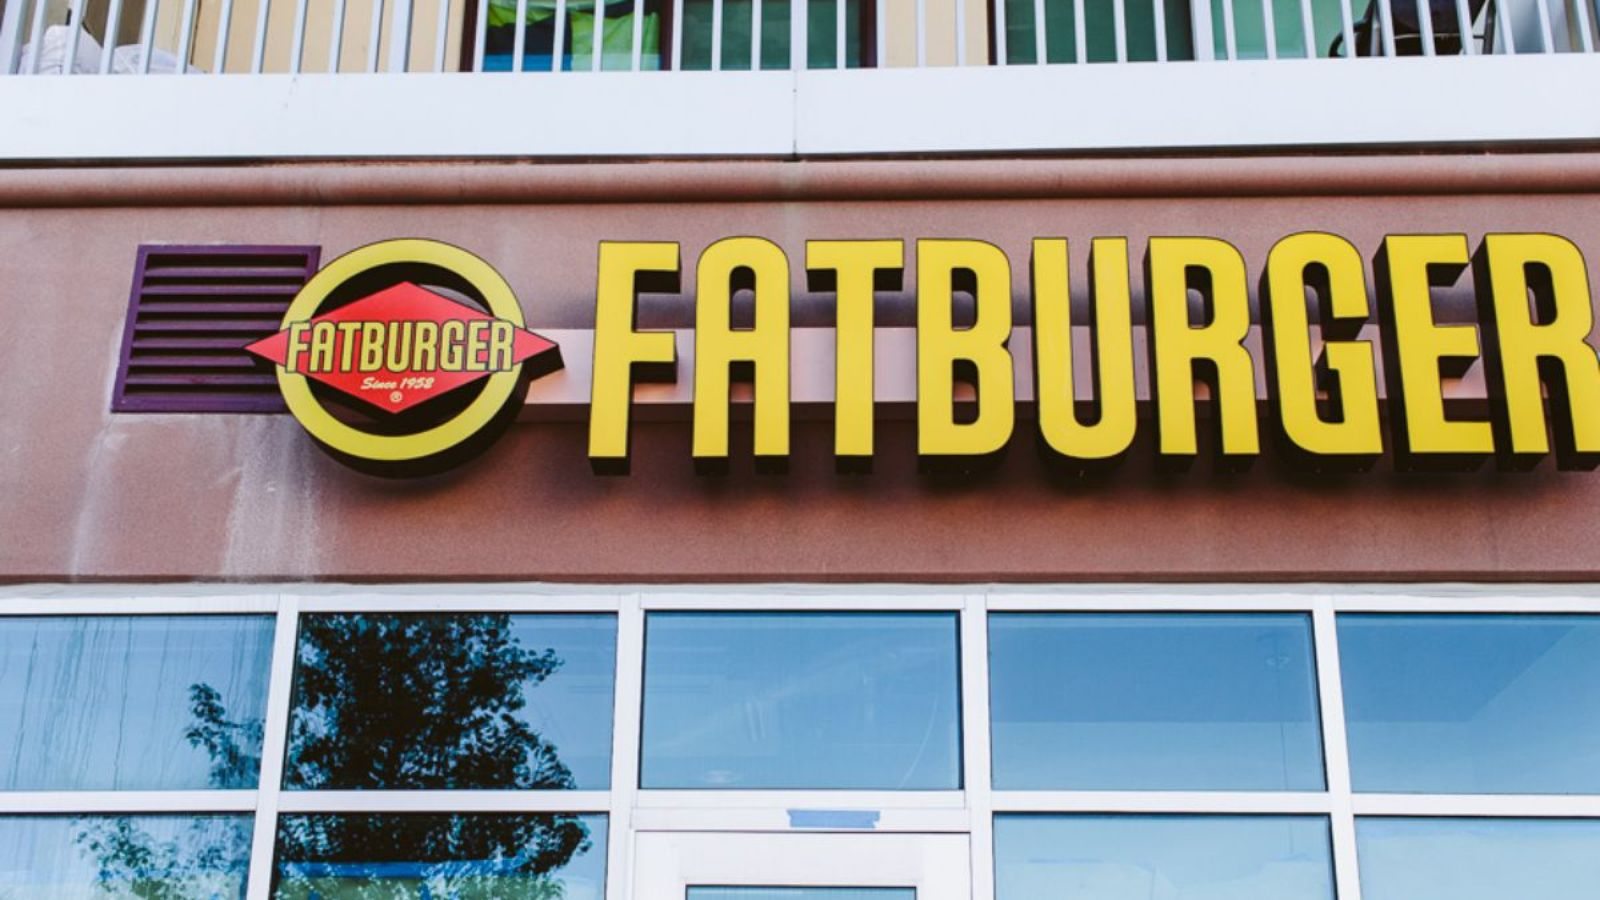 andrew wiederhorn and fatburger inc Andrew a wiederhorn, age 51, has served as the chairman of the board of  of  fatburger north america, inc since 2006 and buffalo's franchise concepts, inc.